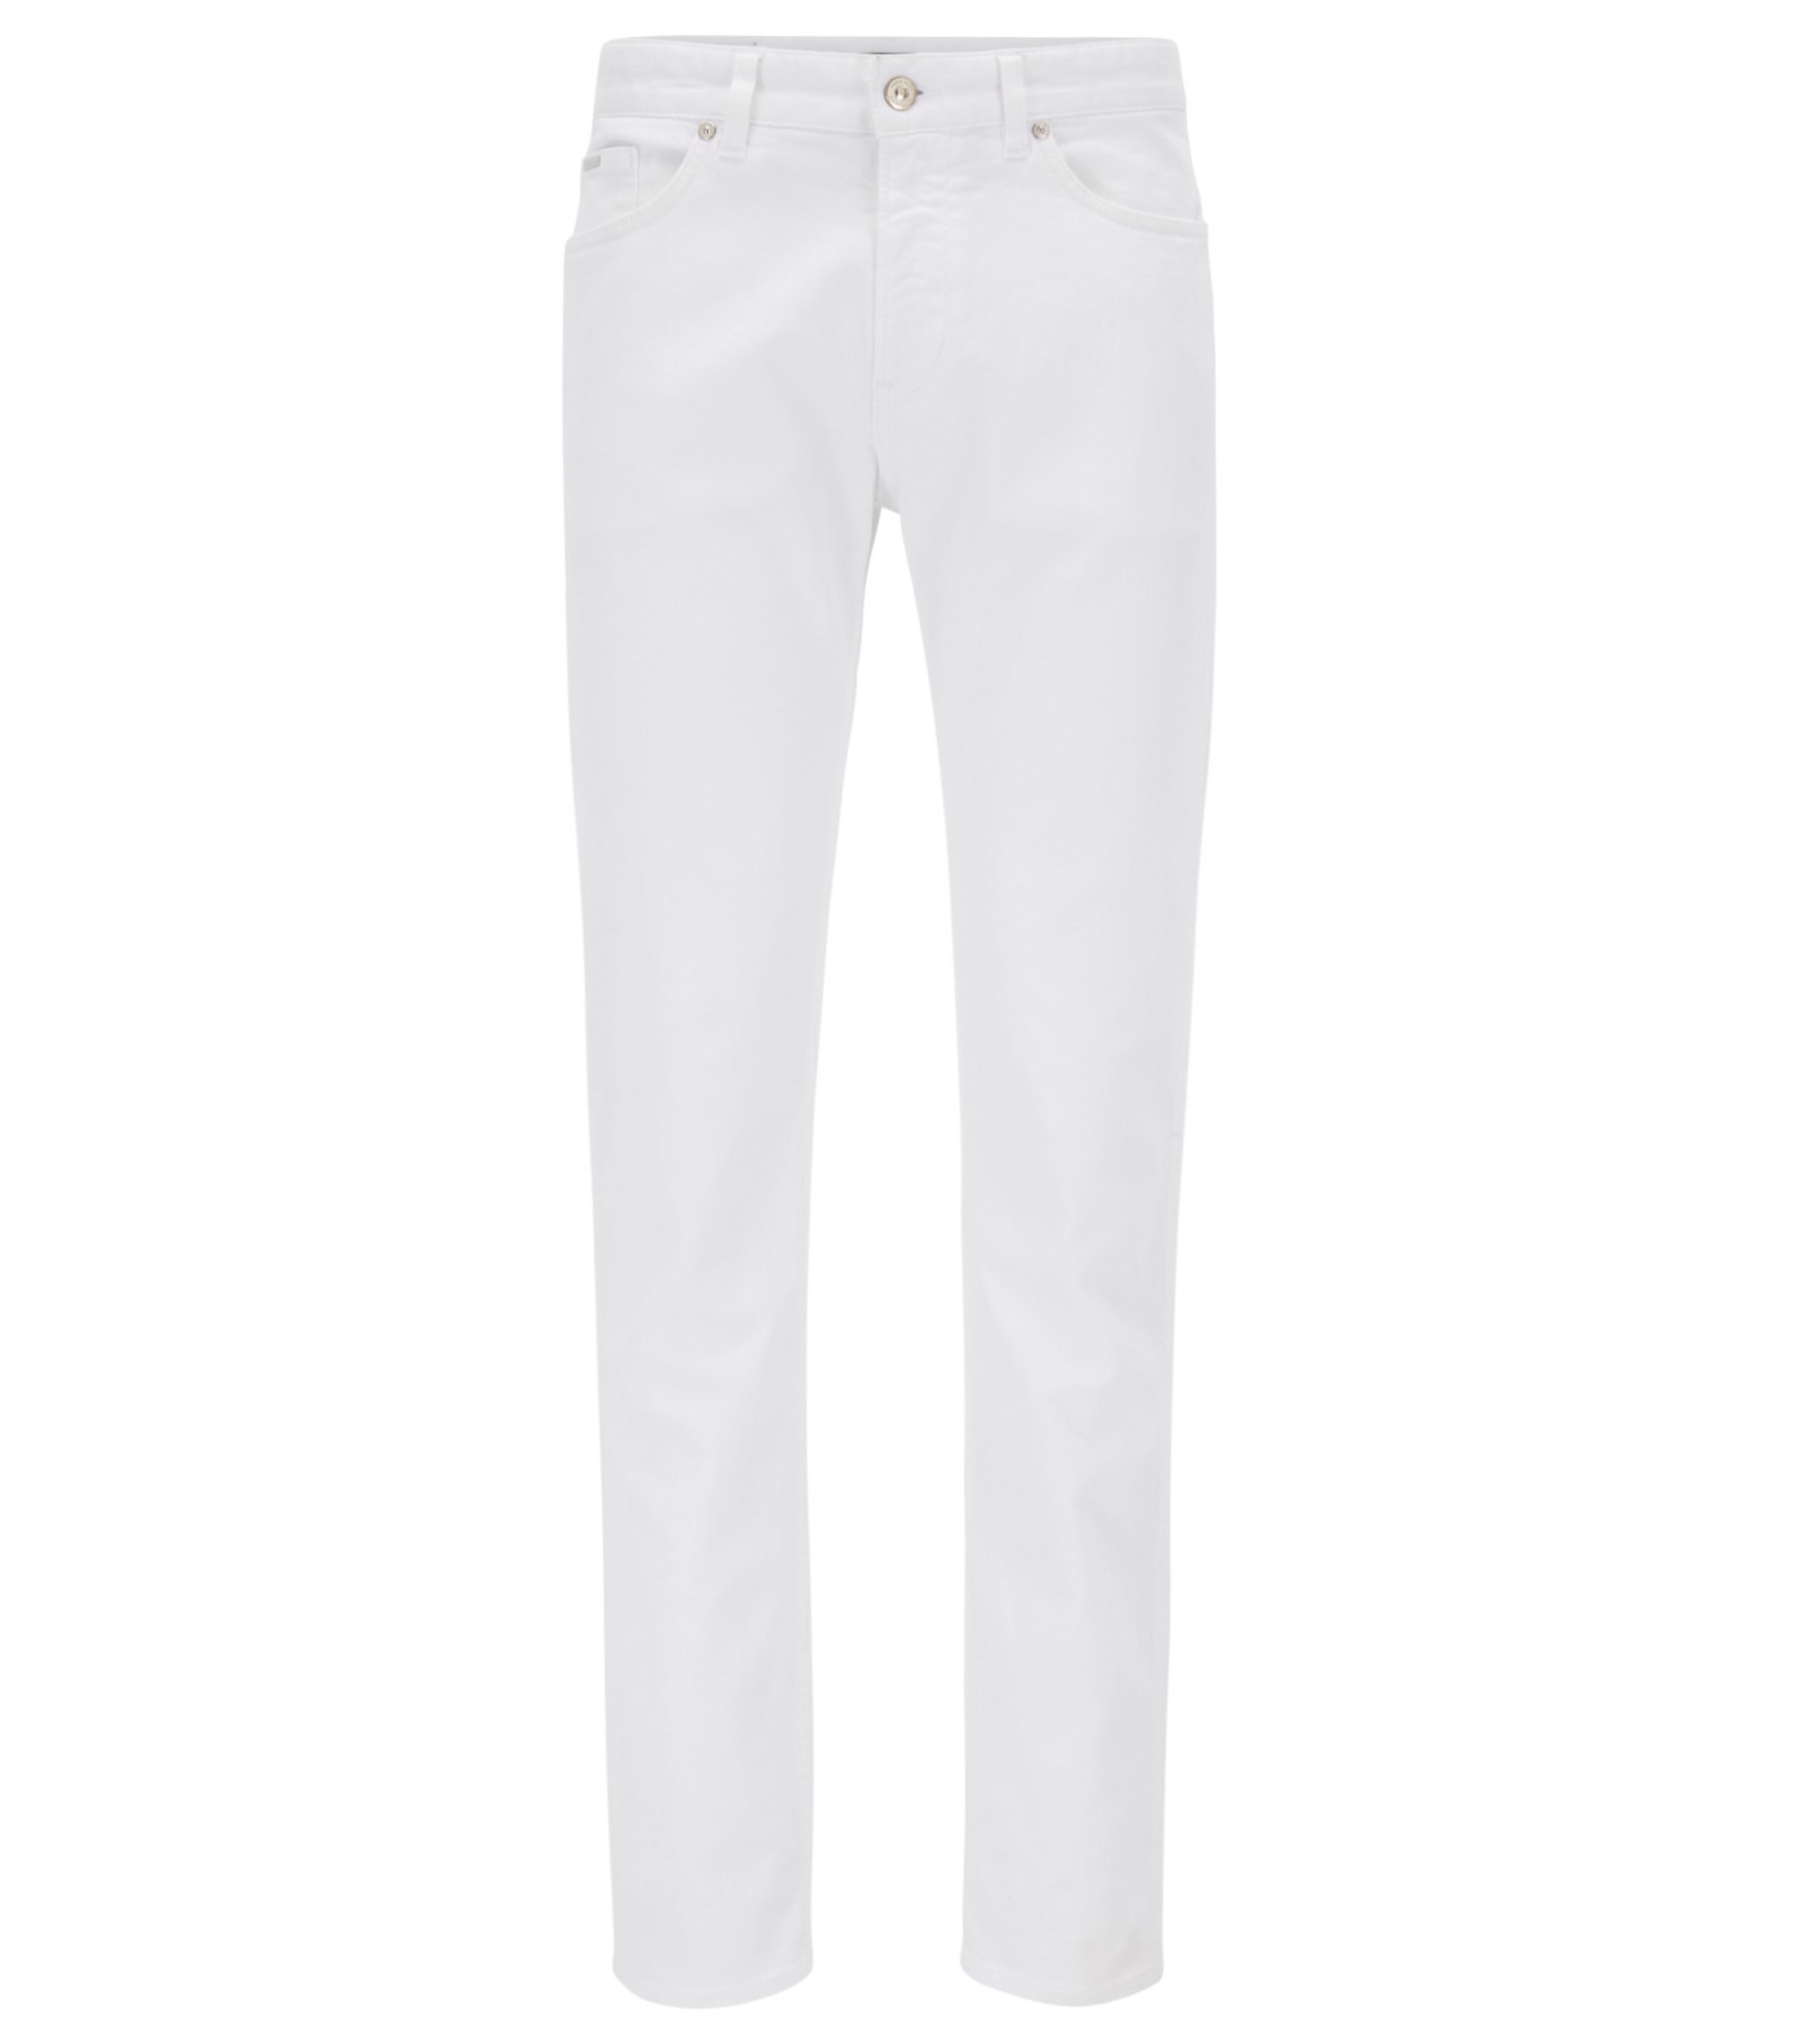 Jeans Slim Fit en tissu stretch, Blanc